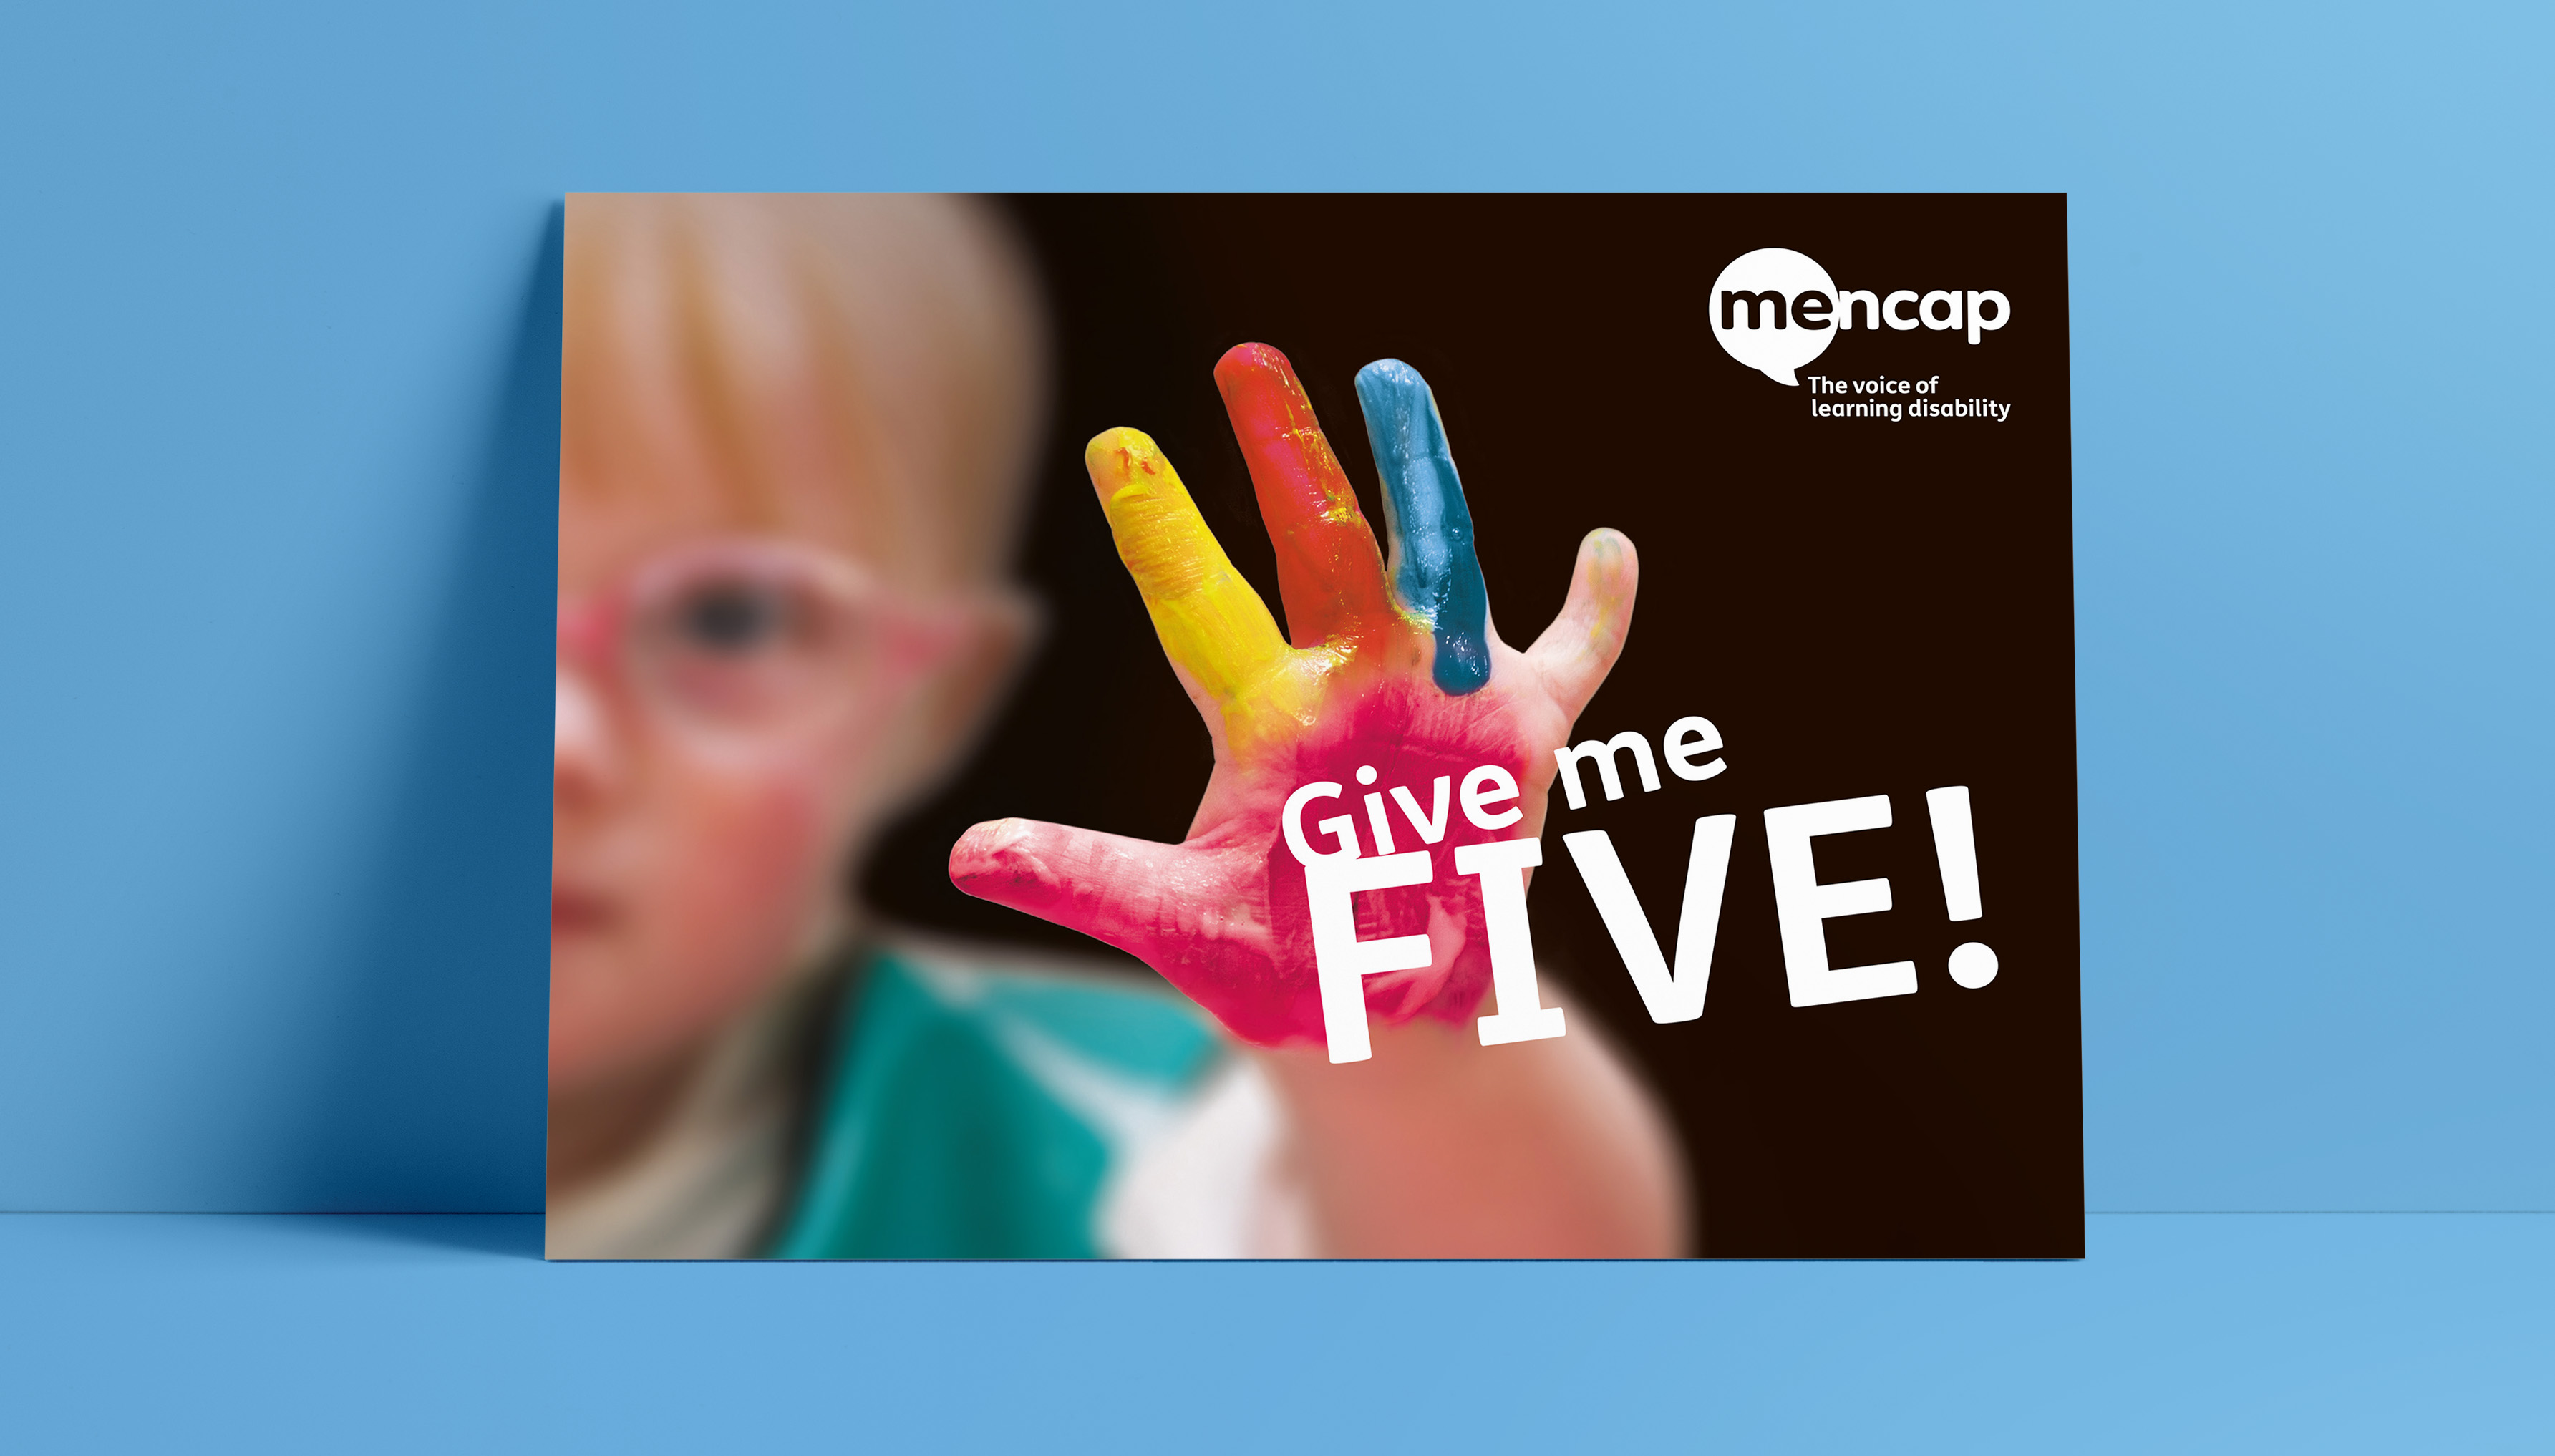 mencap give me 5 dm